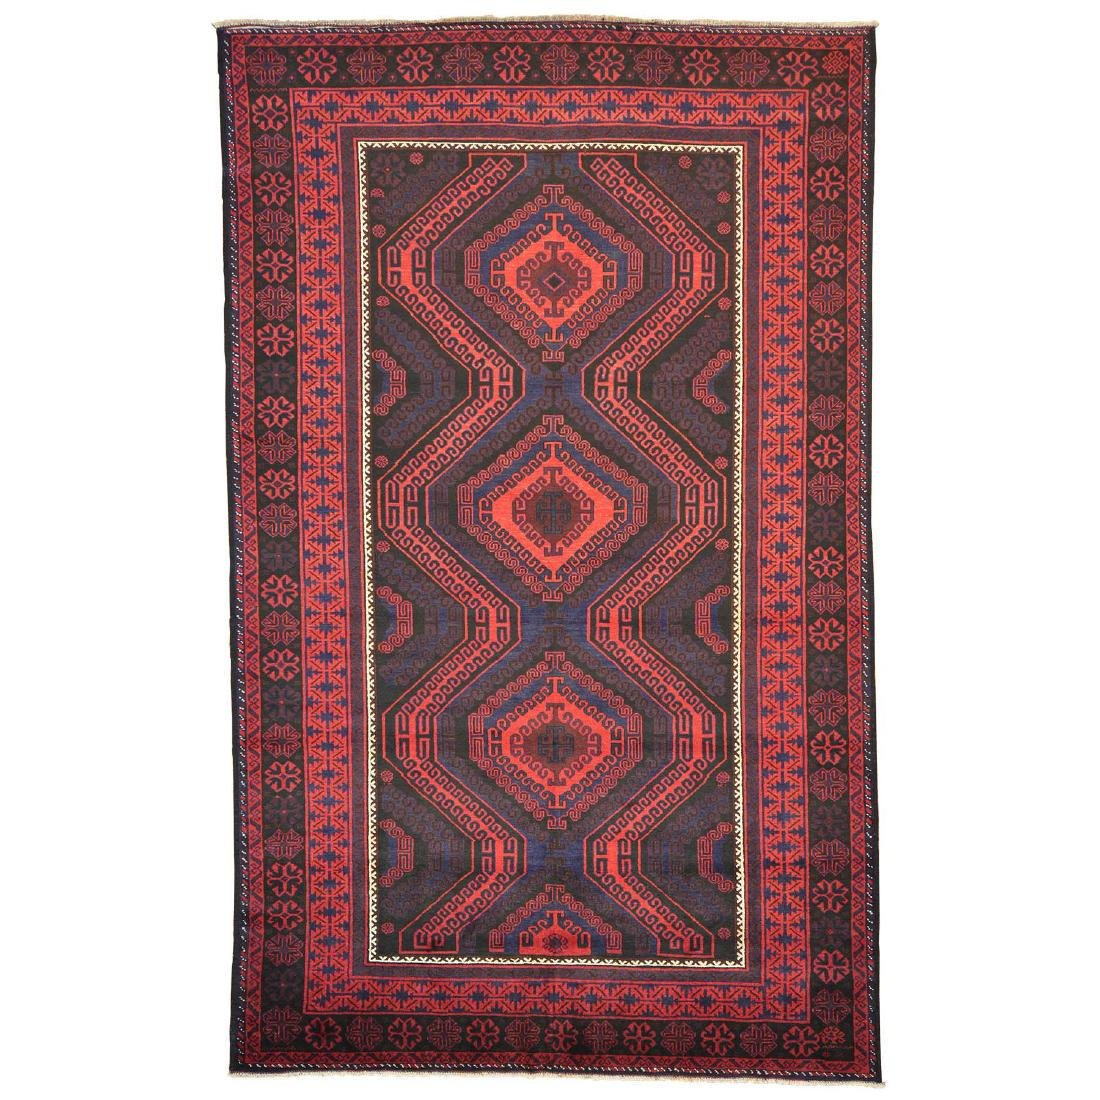 Tribal Design Persian Baluch Hand Made Rug 6.7x10.8